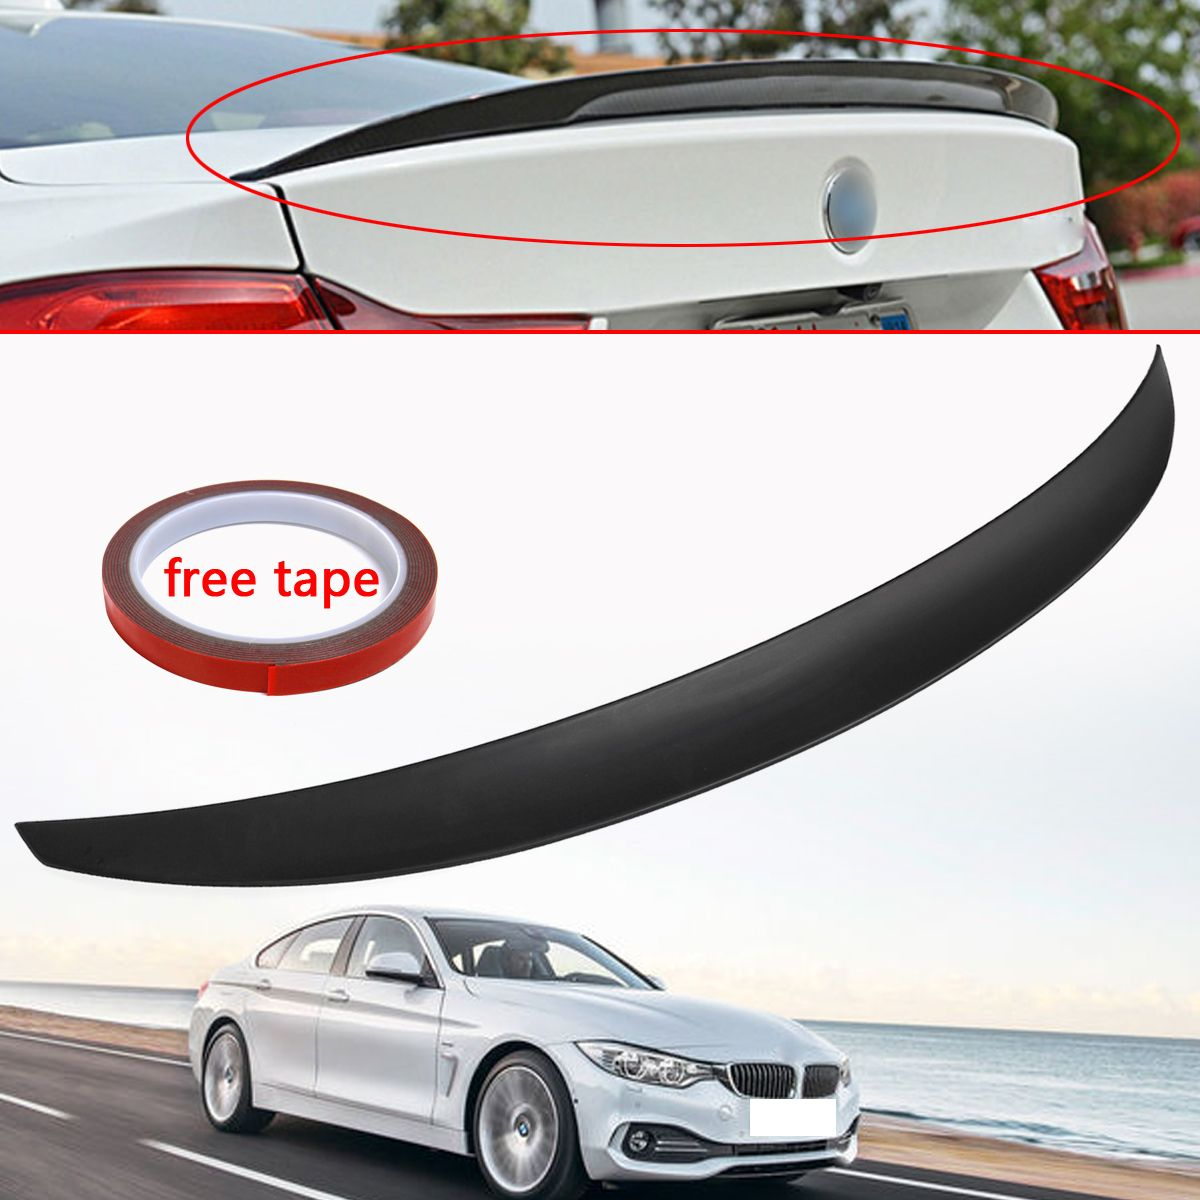 New Rear Trunk Spoiler Wing Performance Style for BMW 4-Series F36 4 Door Gran for Coupe 2014 2015 2016 - UP 420i 420d 428i